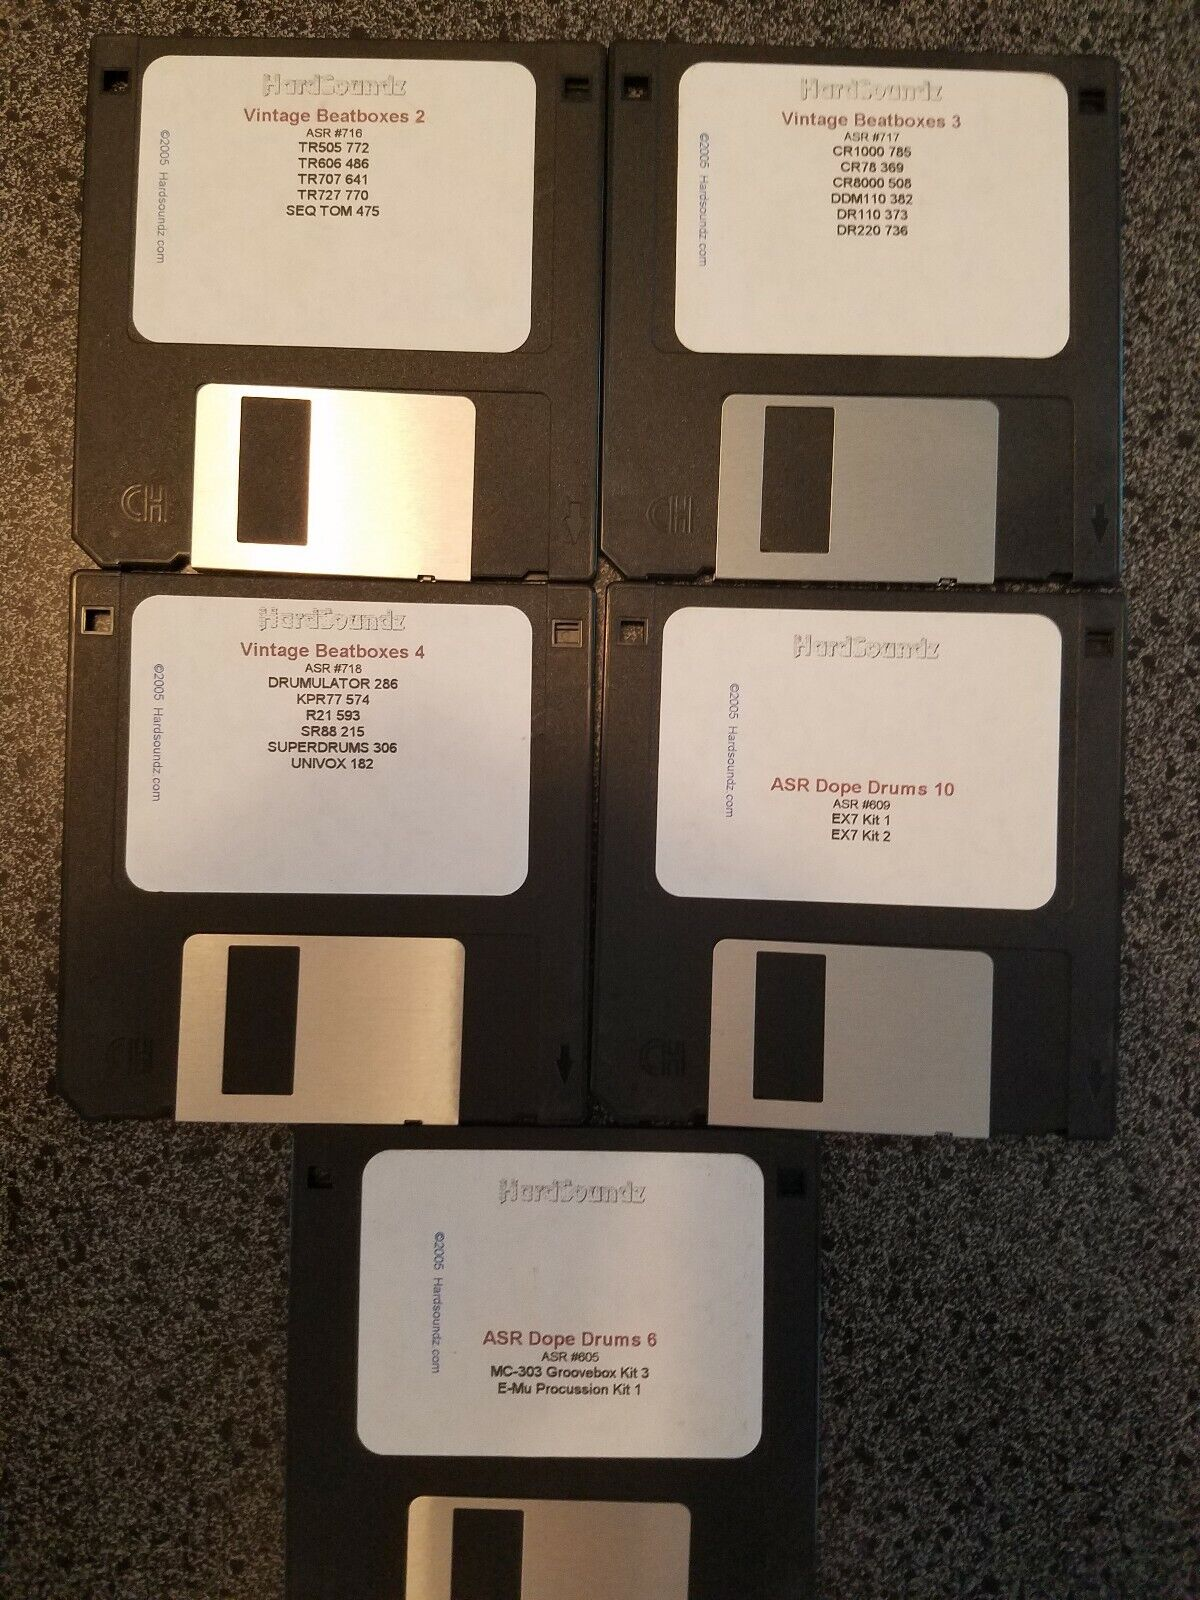 ENSONIQ ASR 10 88, TS10 12 ASRX (11) DISK LIBRARY RARE   MUST READ  SET 2